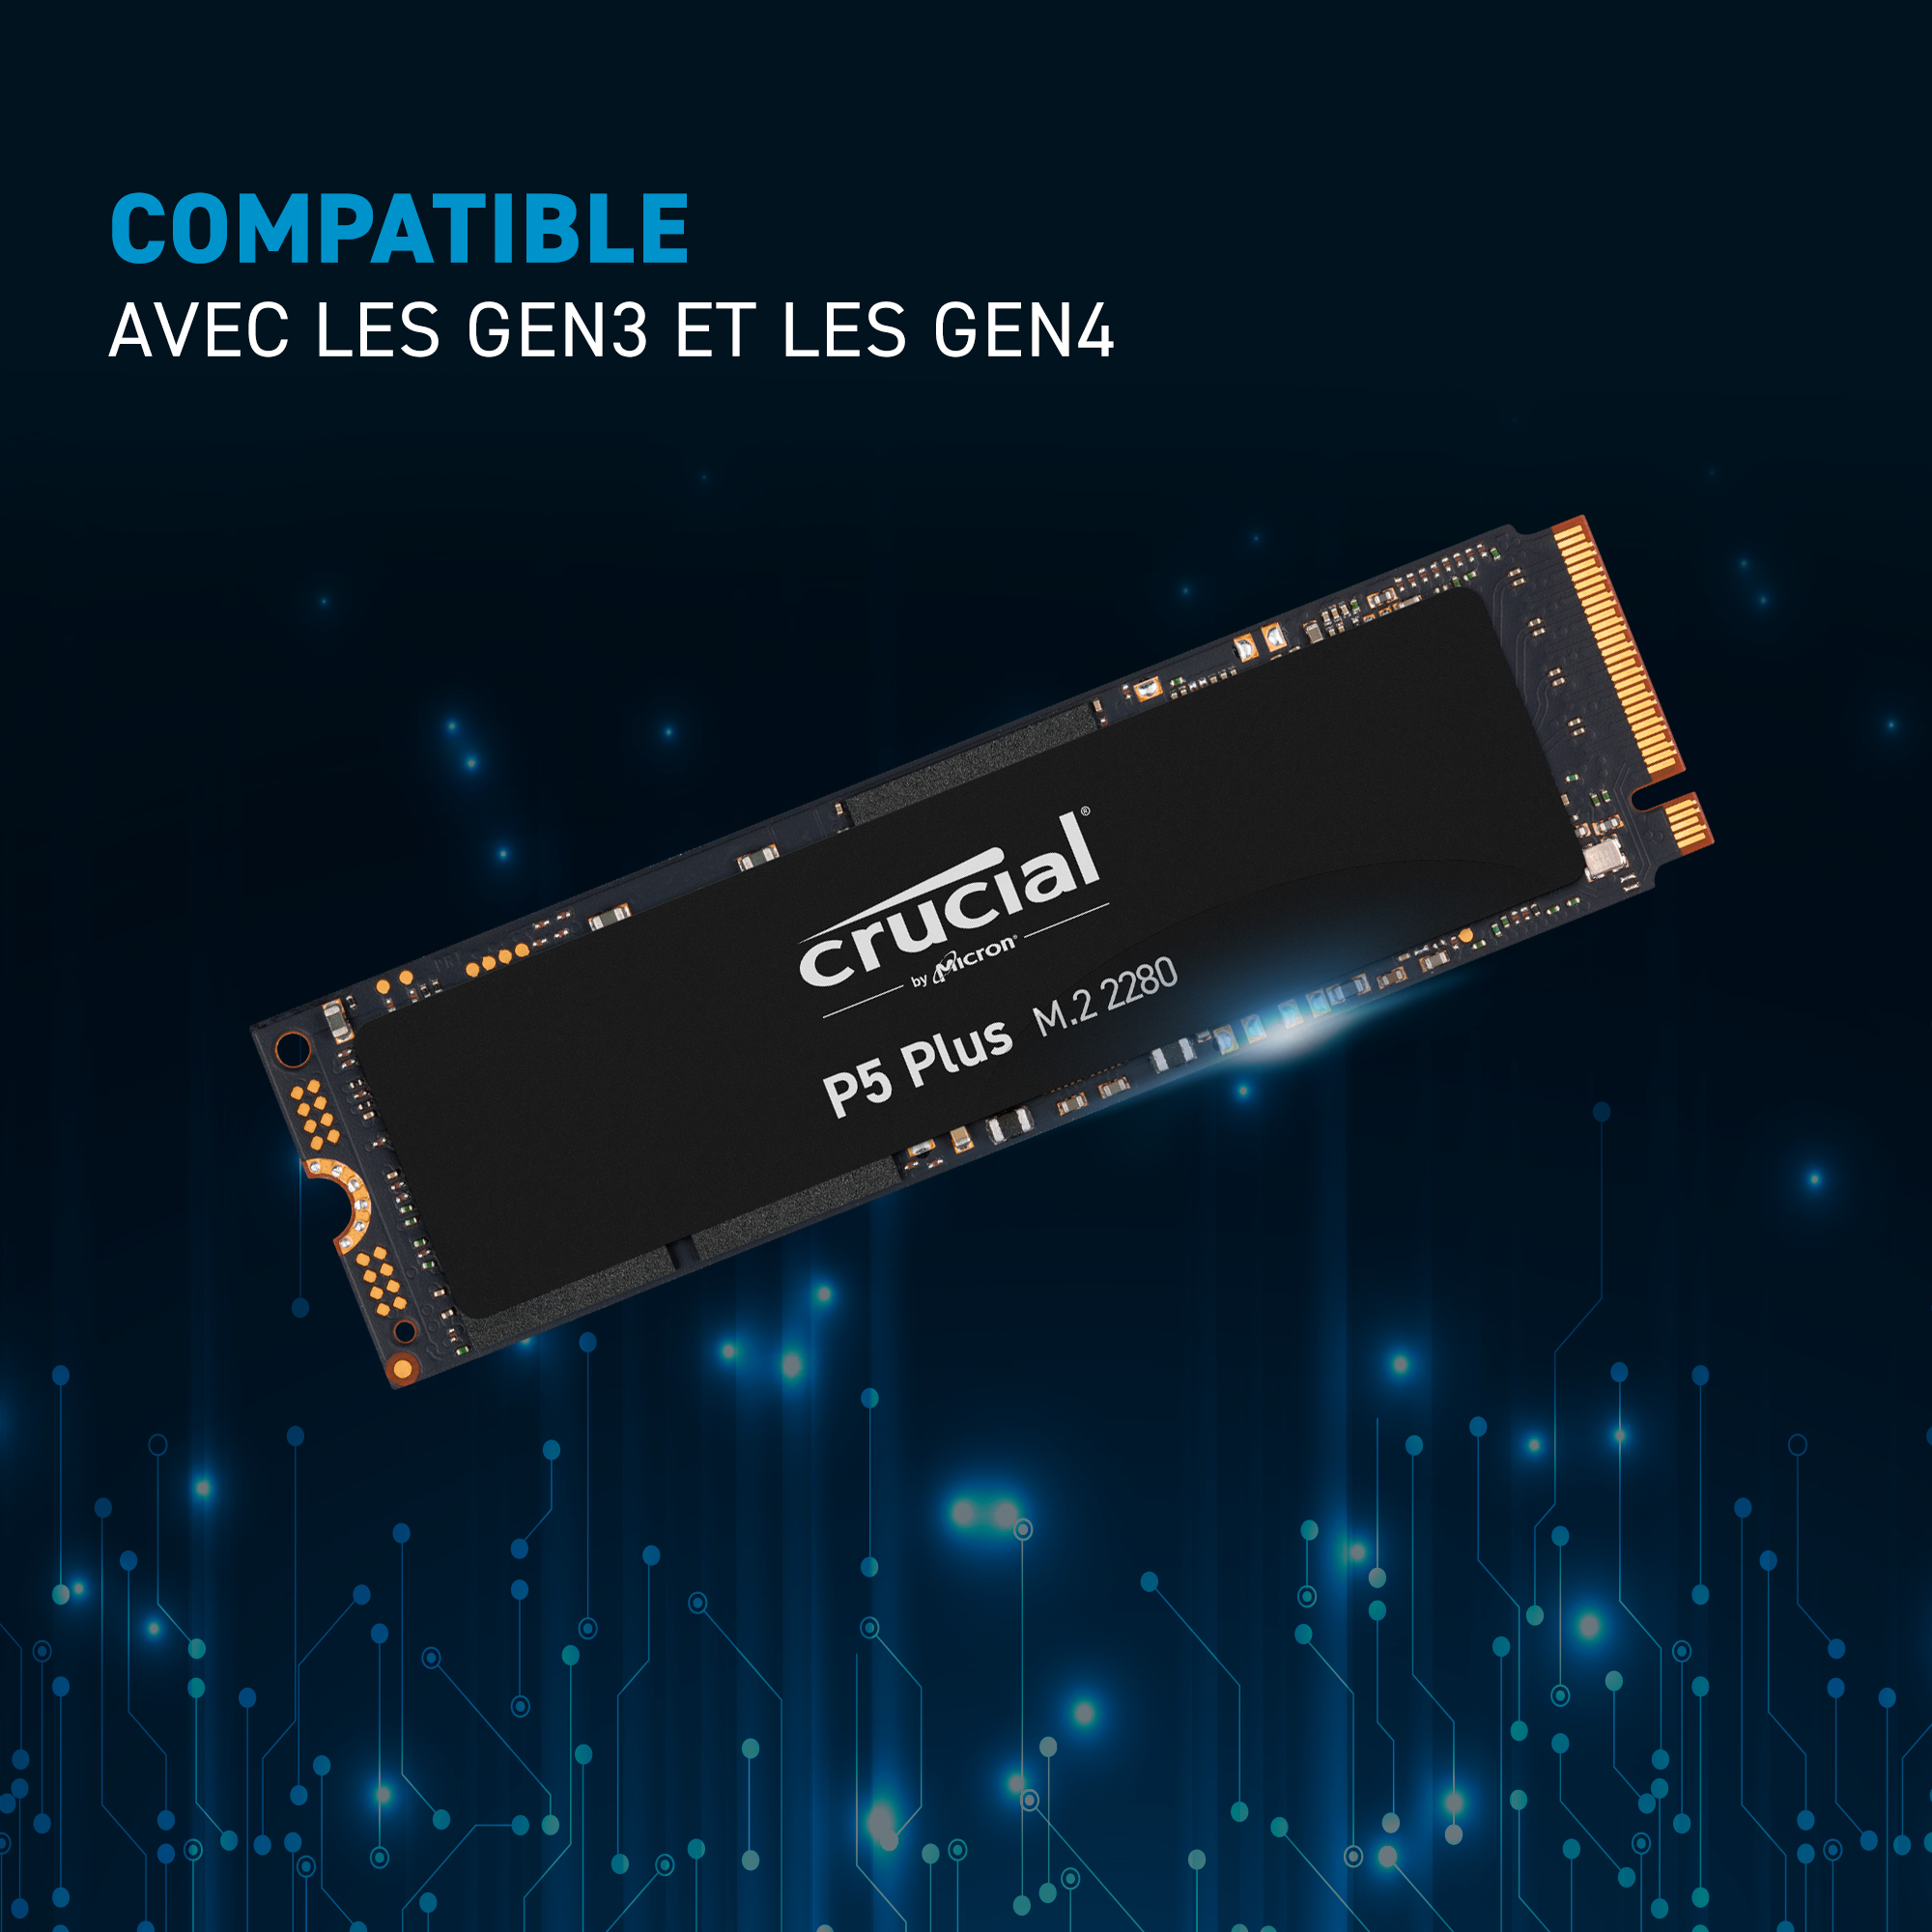 SSD Crucial P5 Plus 500Go M.2 2280SS PCIe- view 5